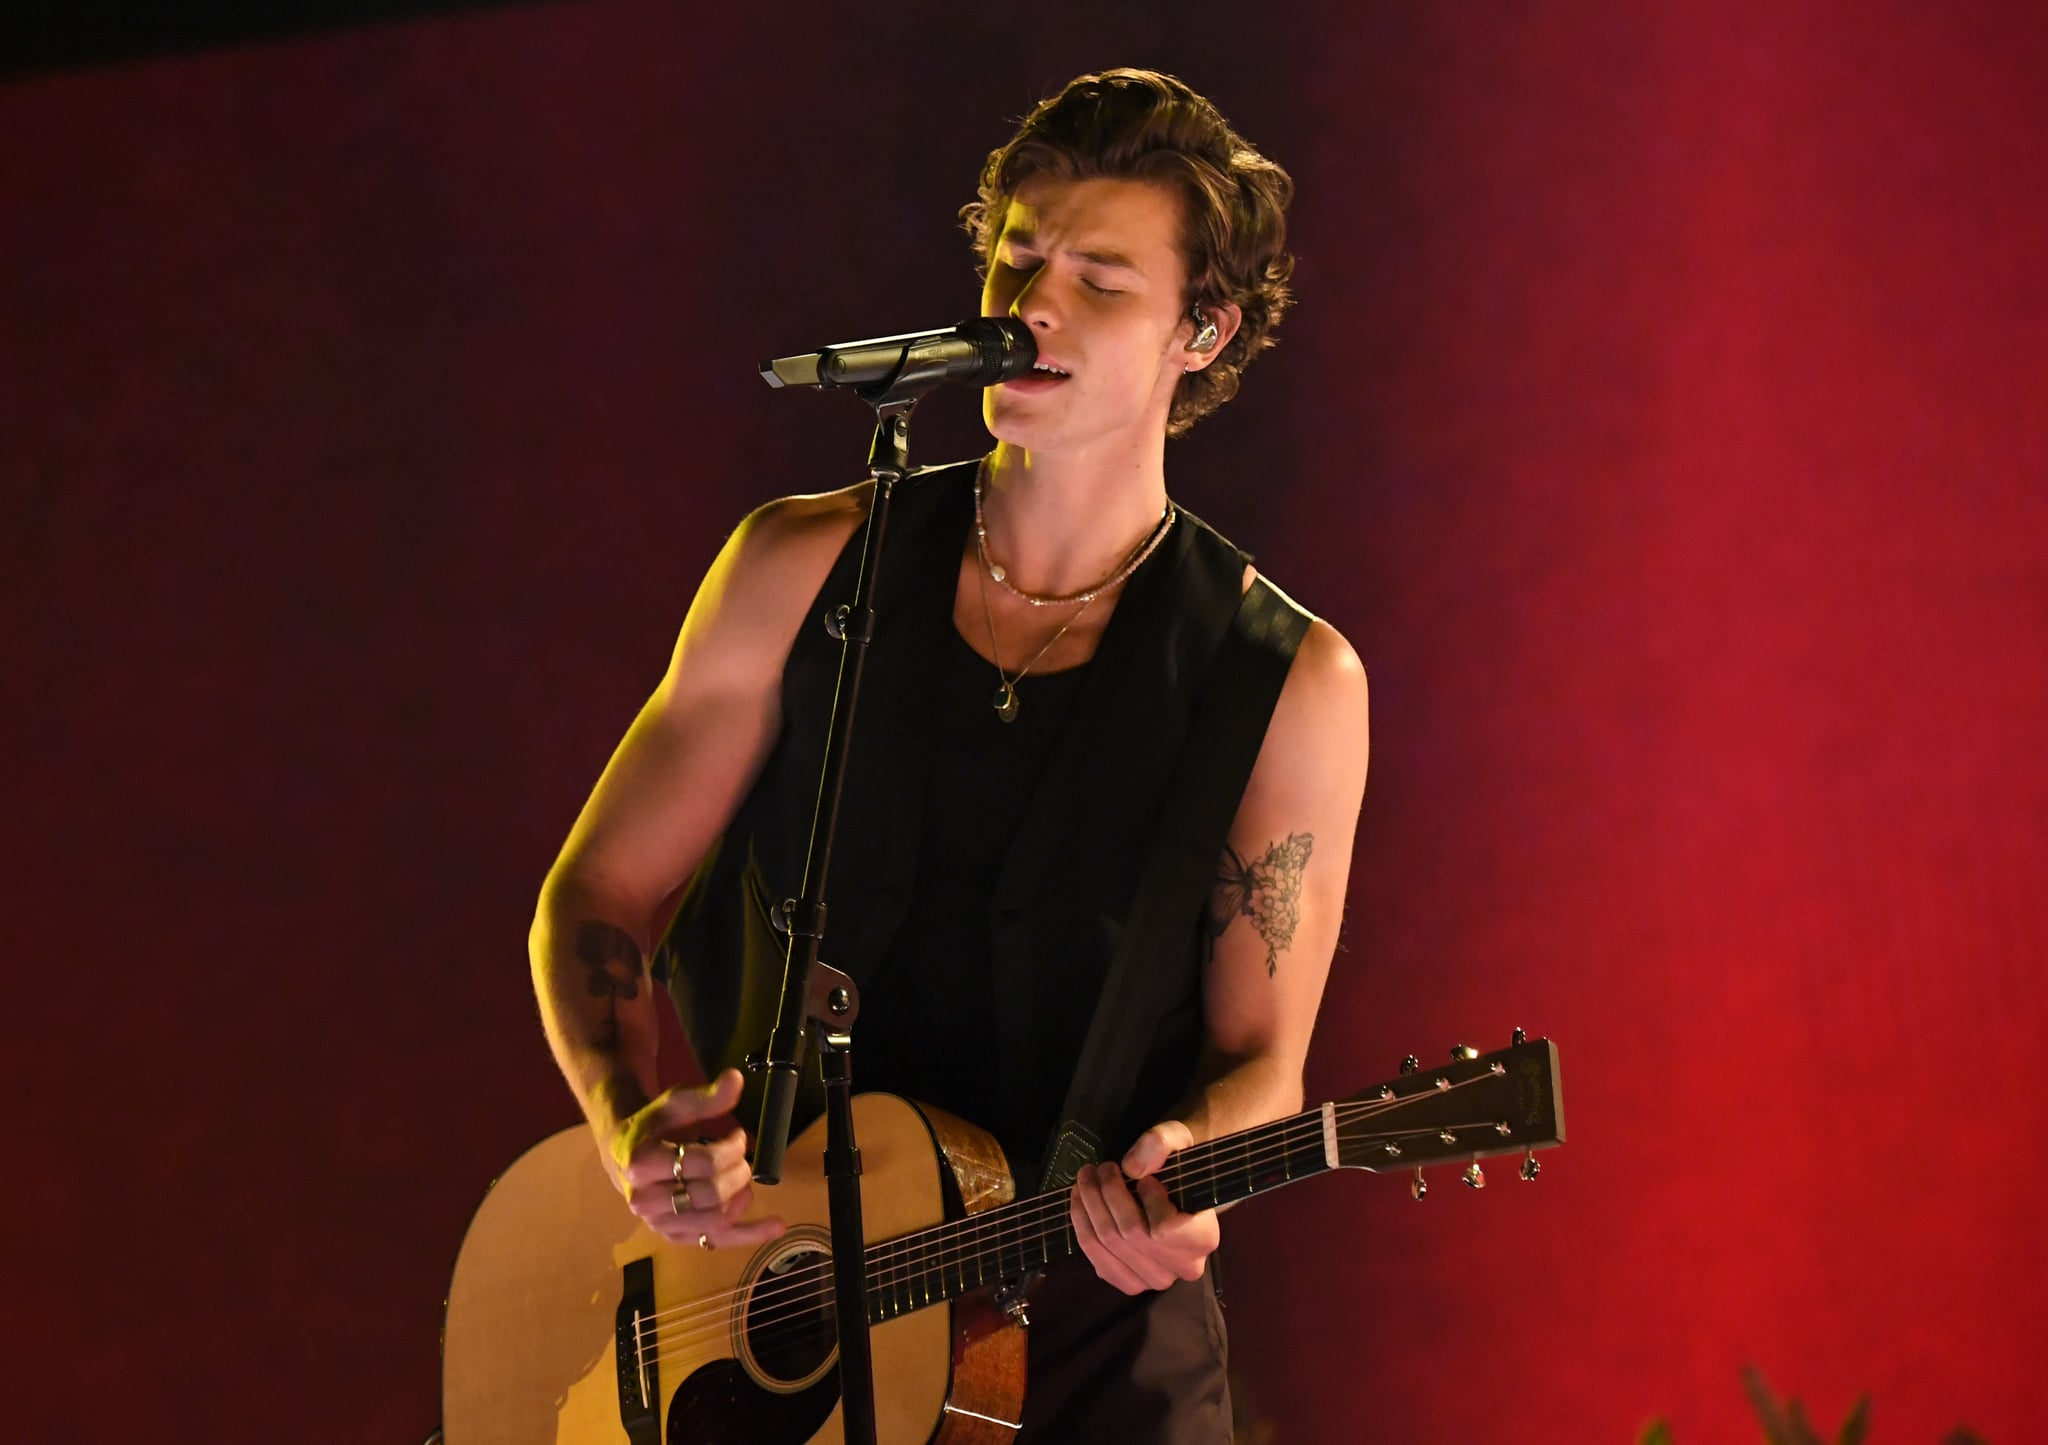 LOS ANGELES, CALIFORNIA - NOVEMBER 24: Shawn Mendes performs onstage during the 2019 American Music Awards at Microsoft Theatre on November 24, 2019 in Los Angeles, California. (Photo by Jeff Kravitz/AMA2019/FilmMagic for dcp)